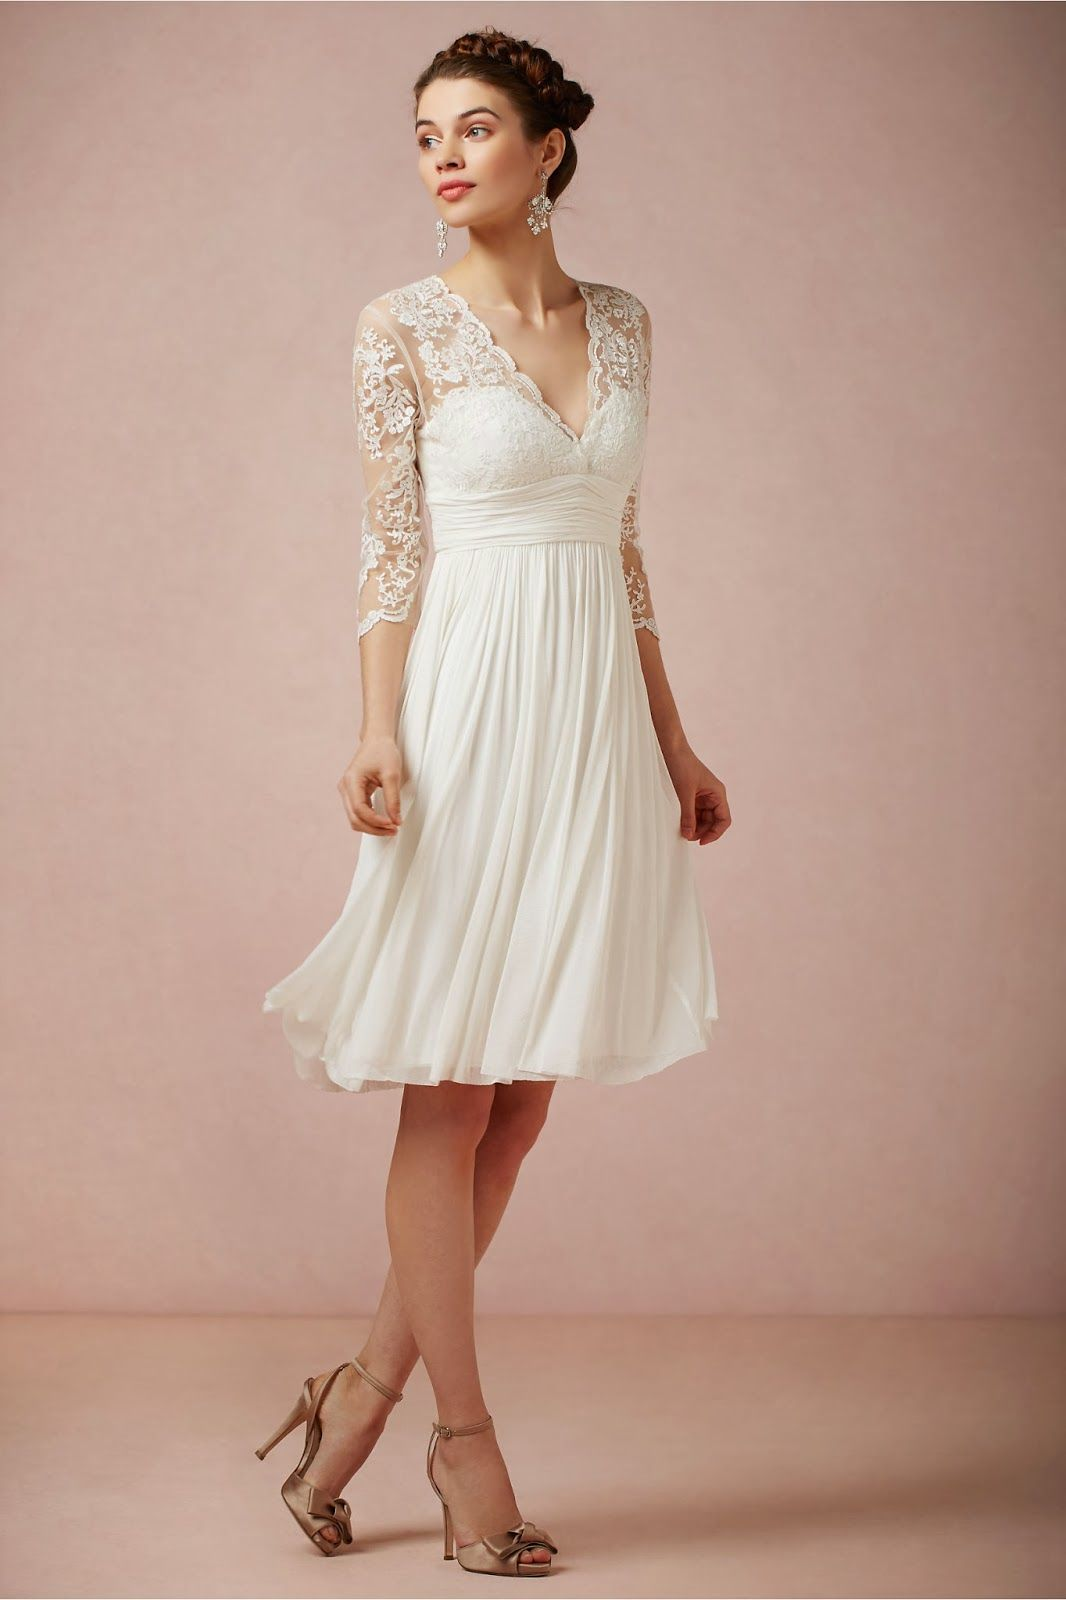 Short Wedding Dress with 3/4 Lace Sleeves | Bridal Dresses ...